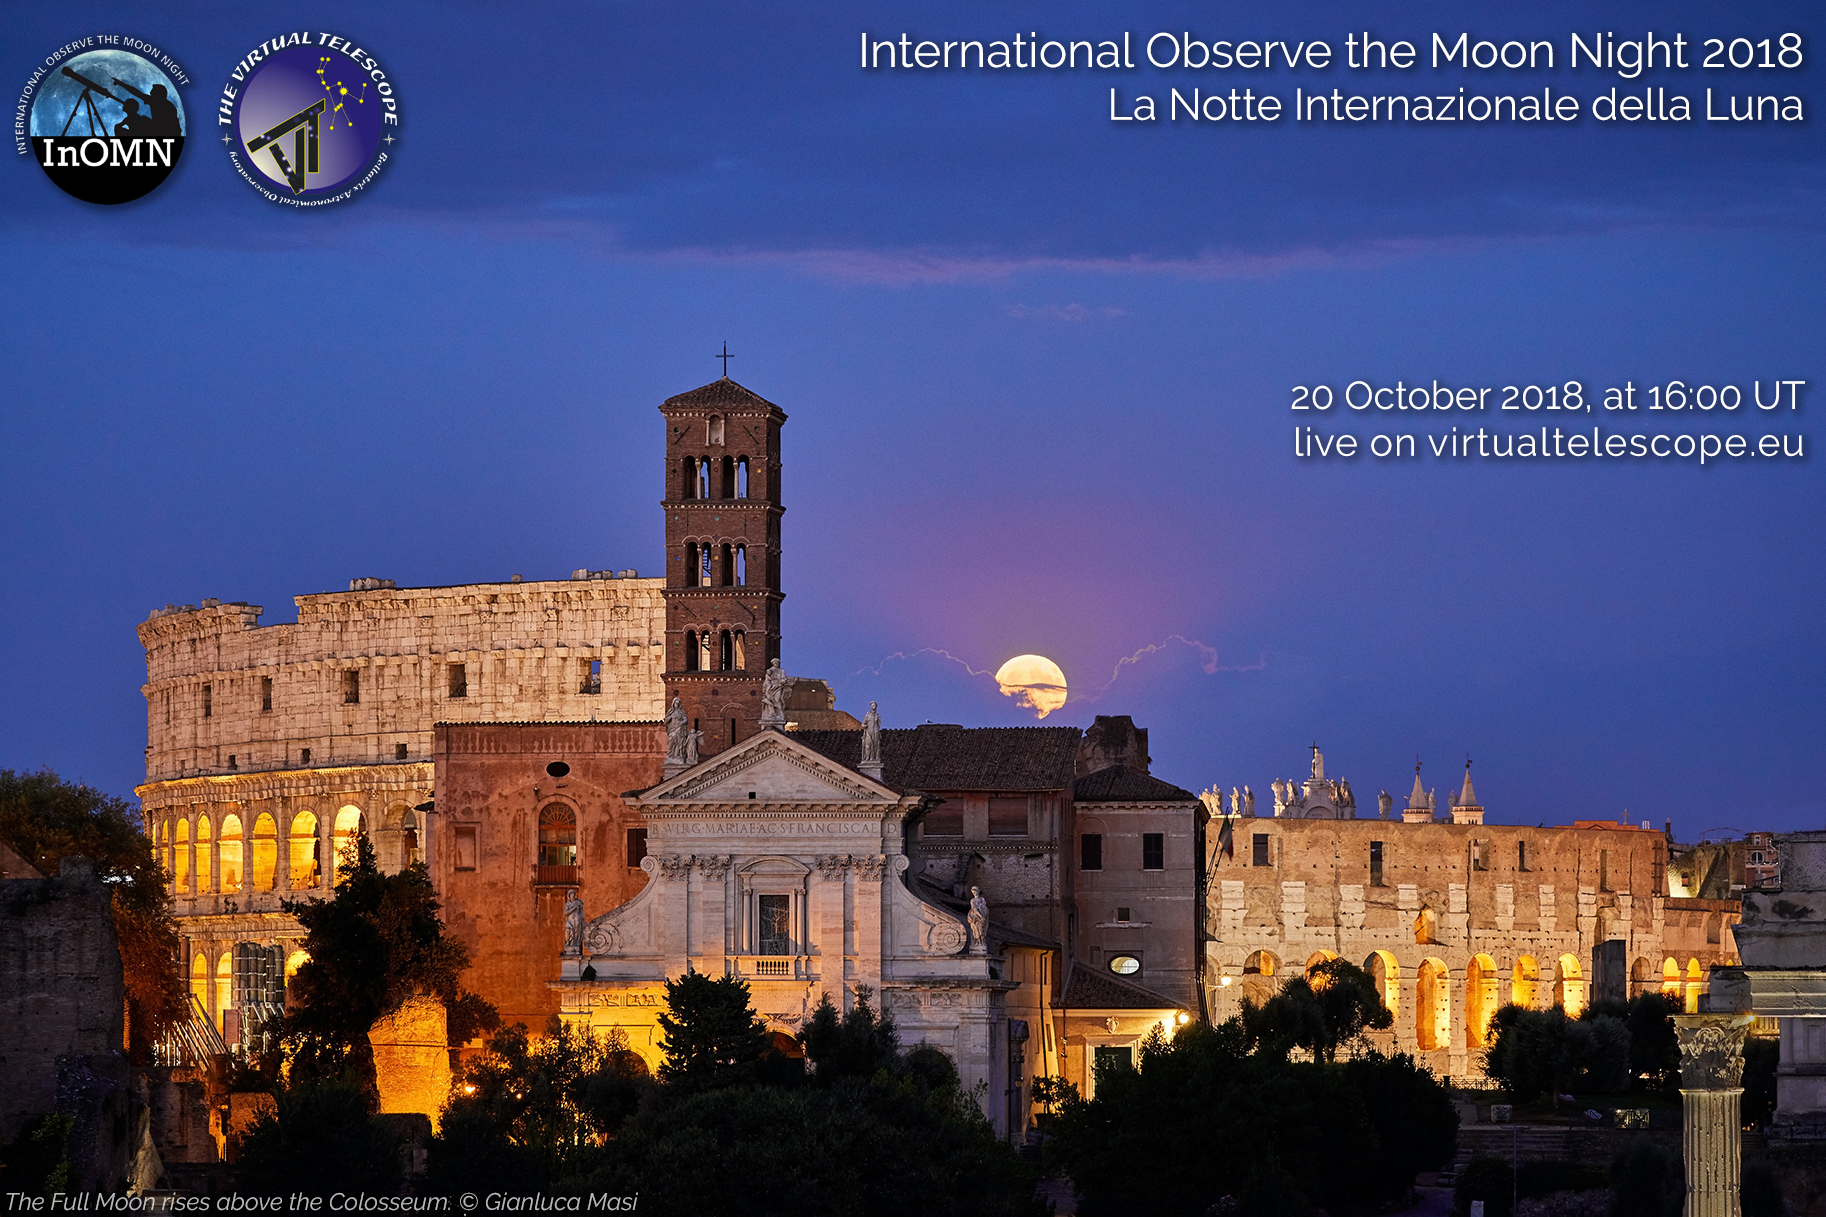 International Observe the Moon Night 2018: online observation - 20 Oct. 2018